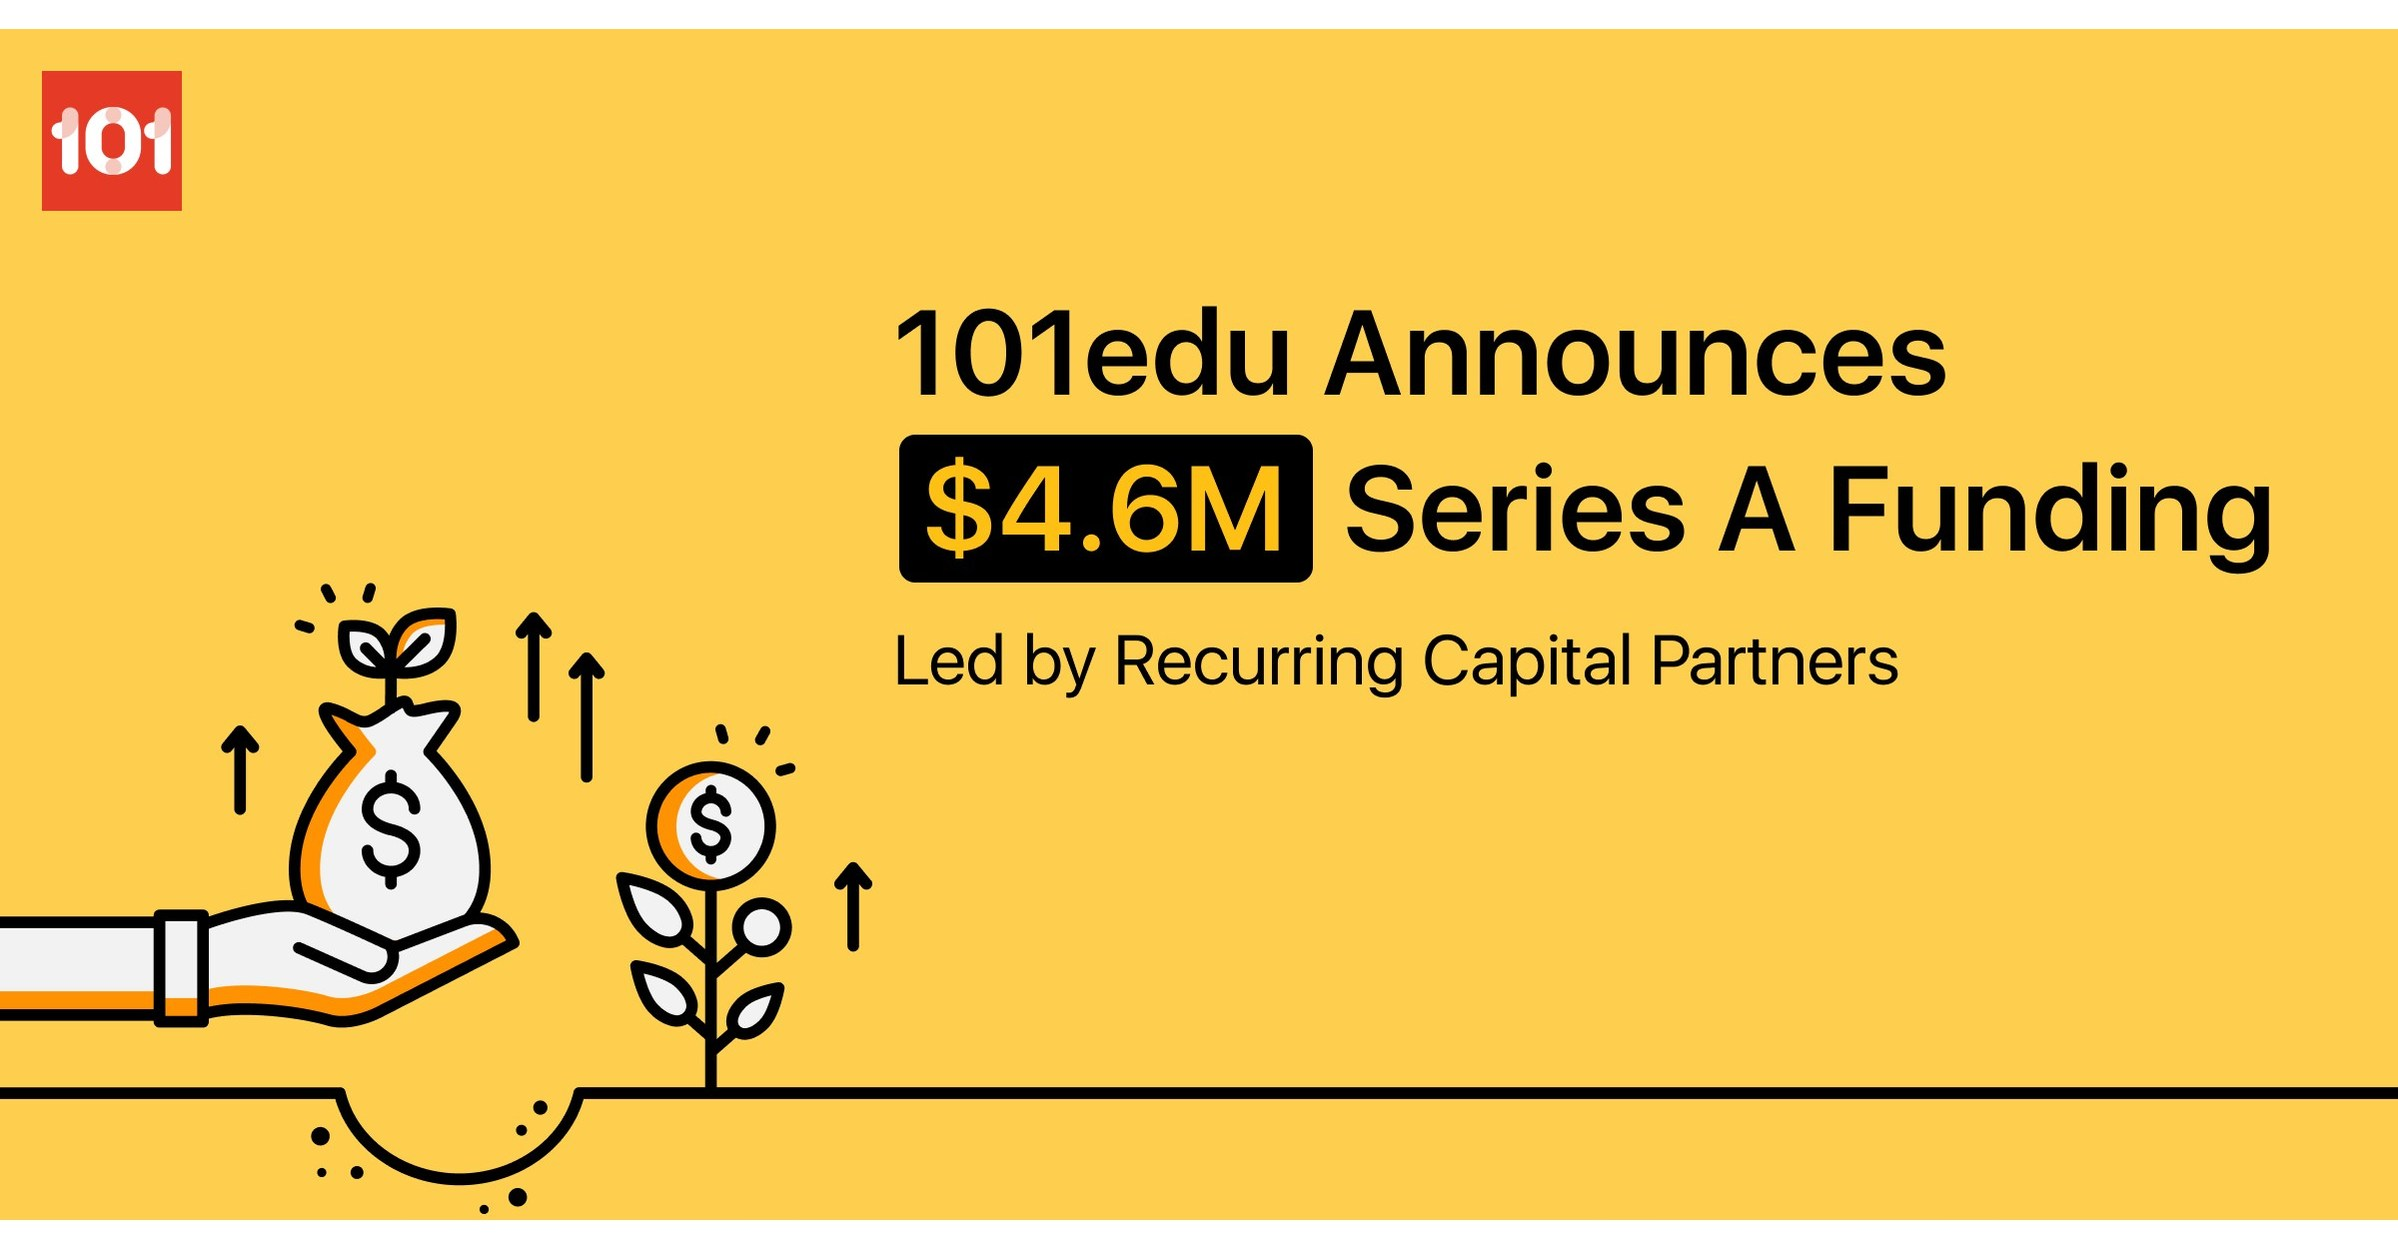 Access here alternative investment news about 101edu Closes Oversubscribed $4.6M Series A Round Led By Recurring Capital Partners